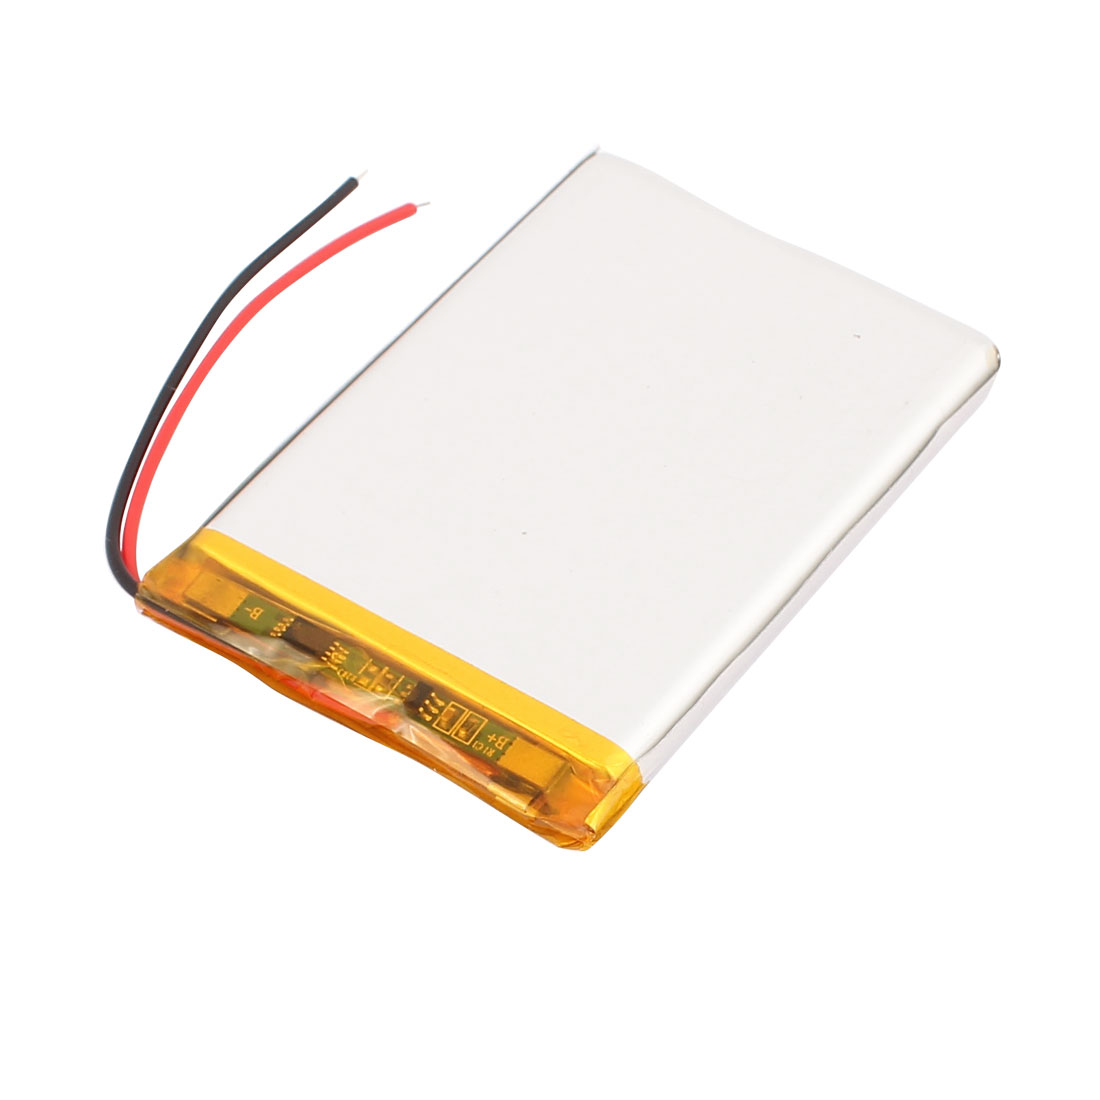 DC 3.7V 2500mAh Recycle Charging Lithium Li-ion Battery Pack for RC Airplane